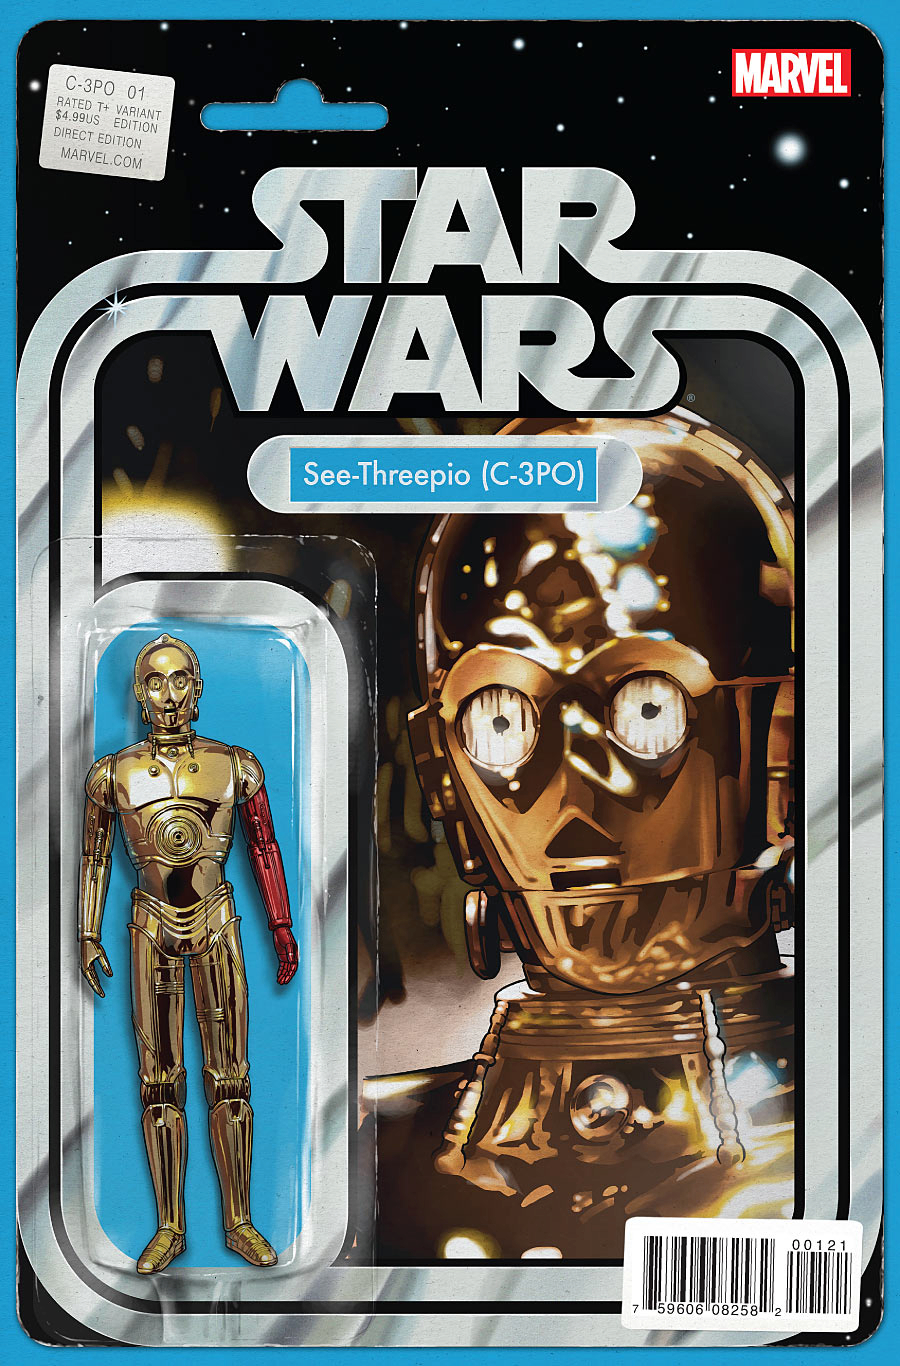 STAR WARS SPECIAL C-3PO #1 ACTION FIGURE VAR